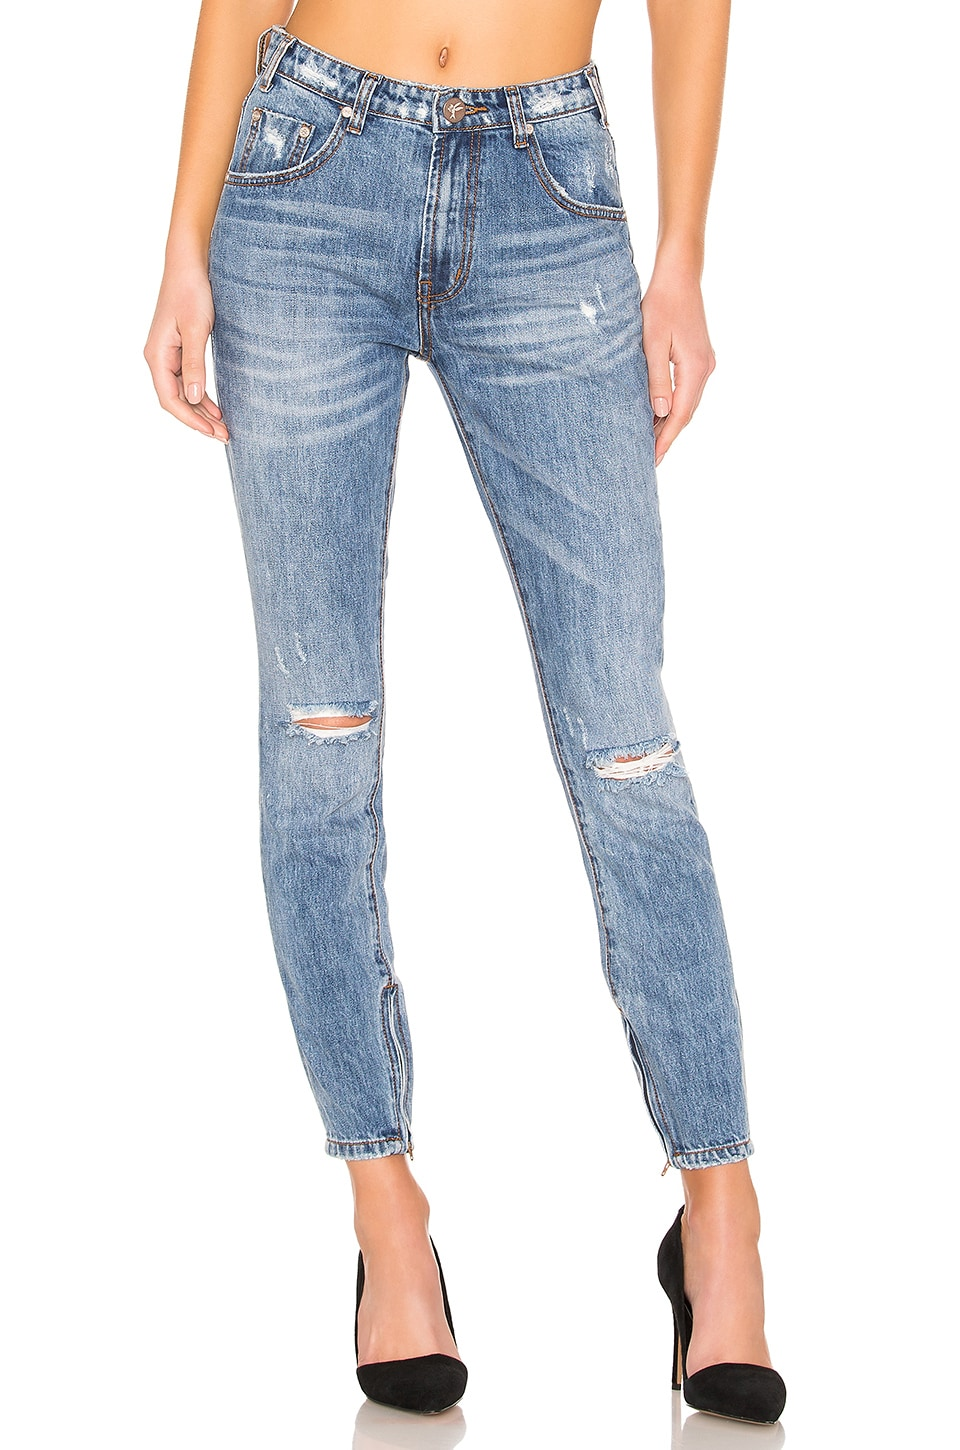 One Teaspoon Freebirds High Waist Skinny Jean in Johnny Blue